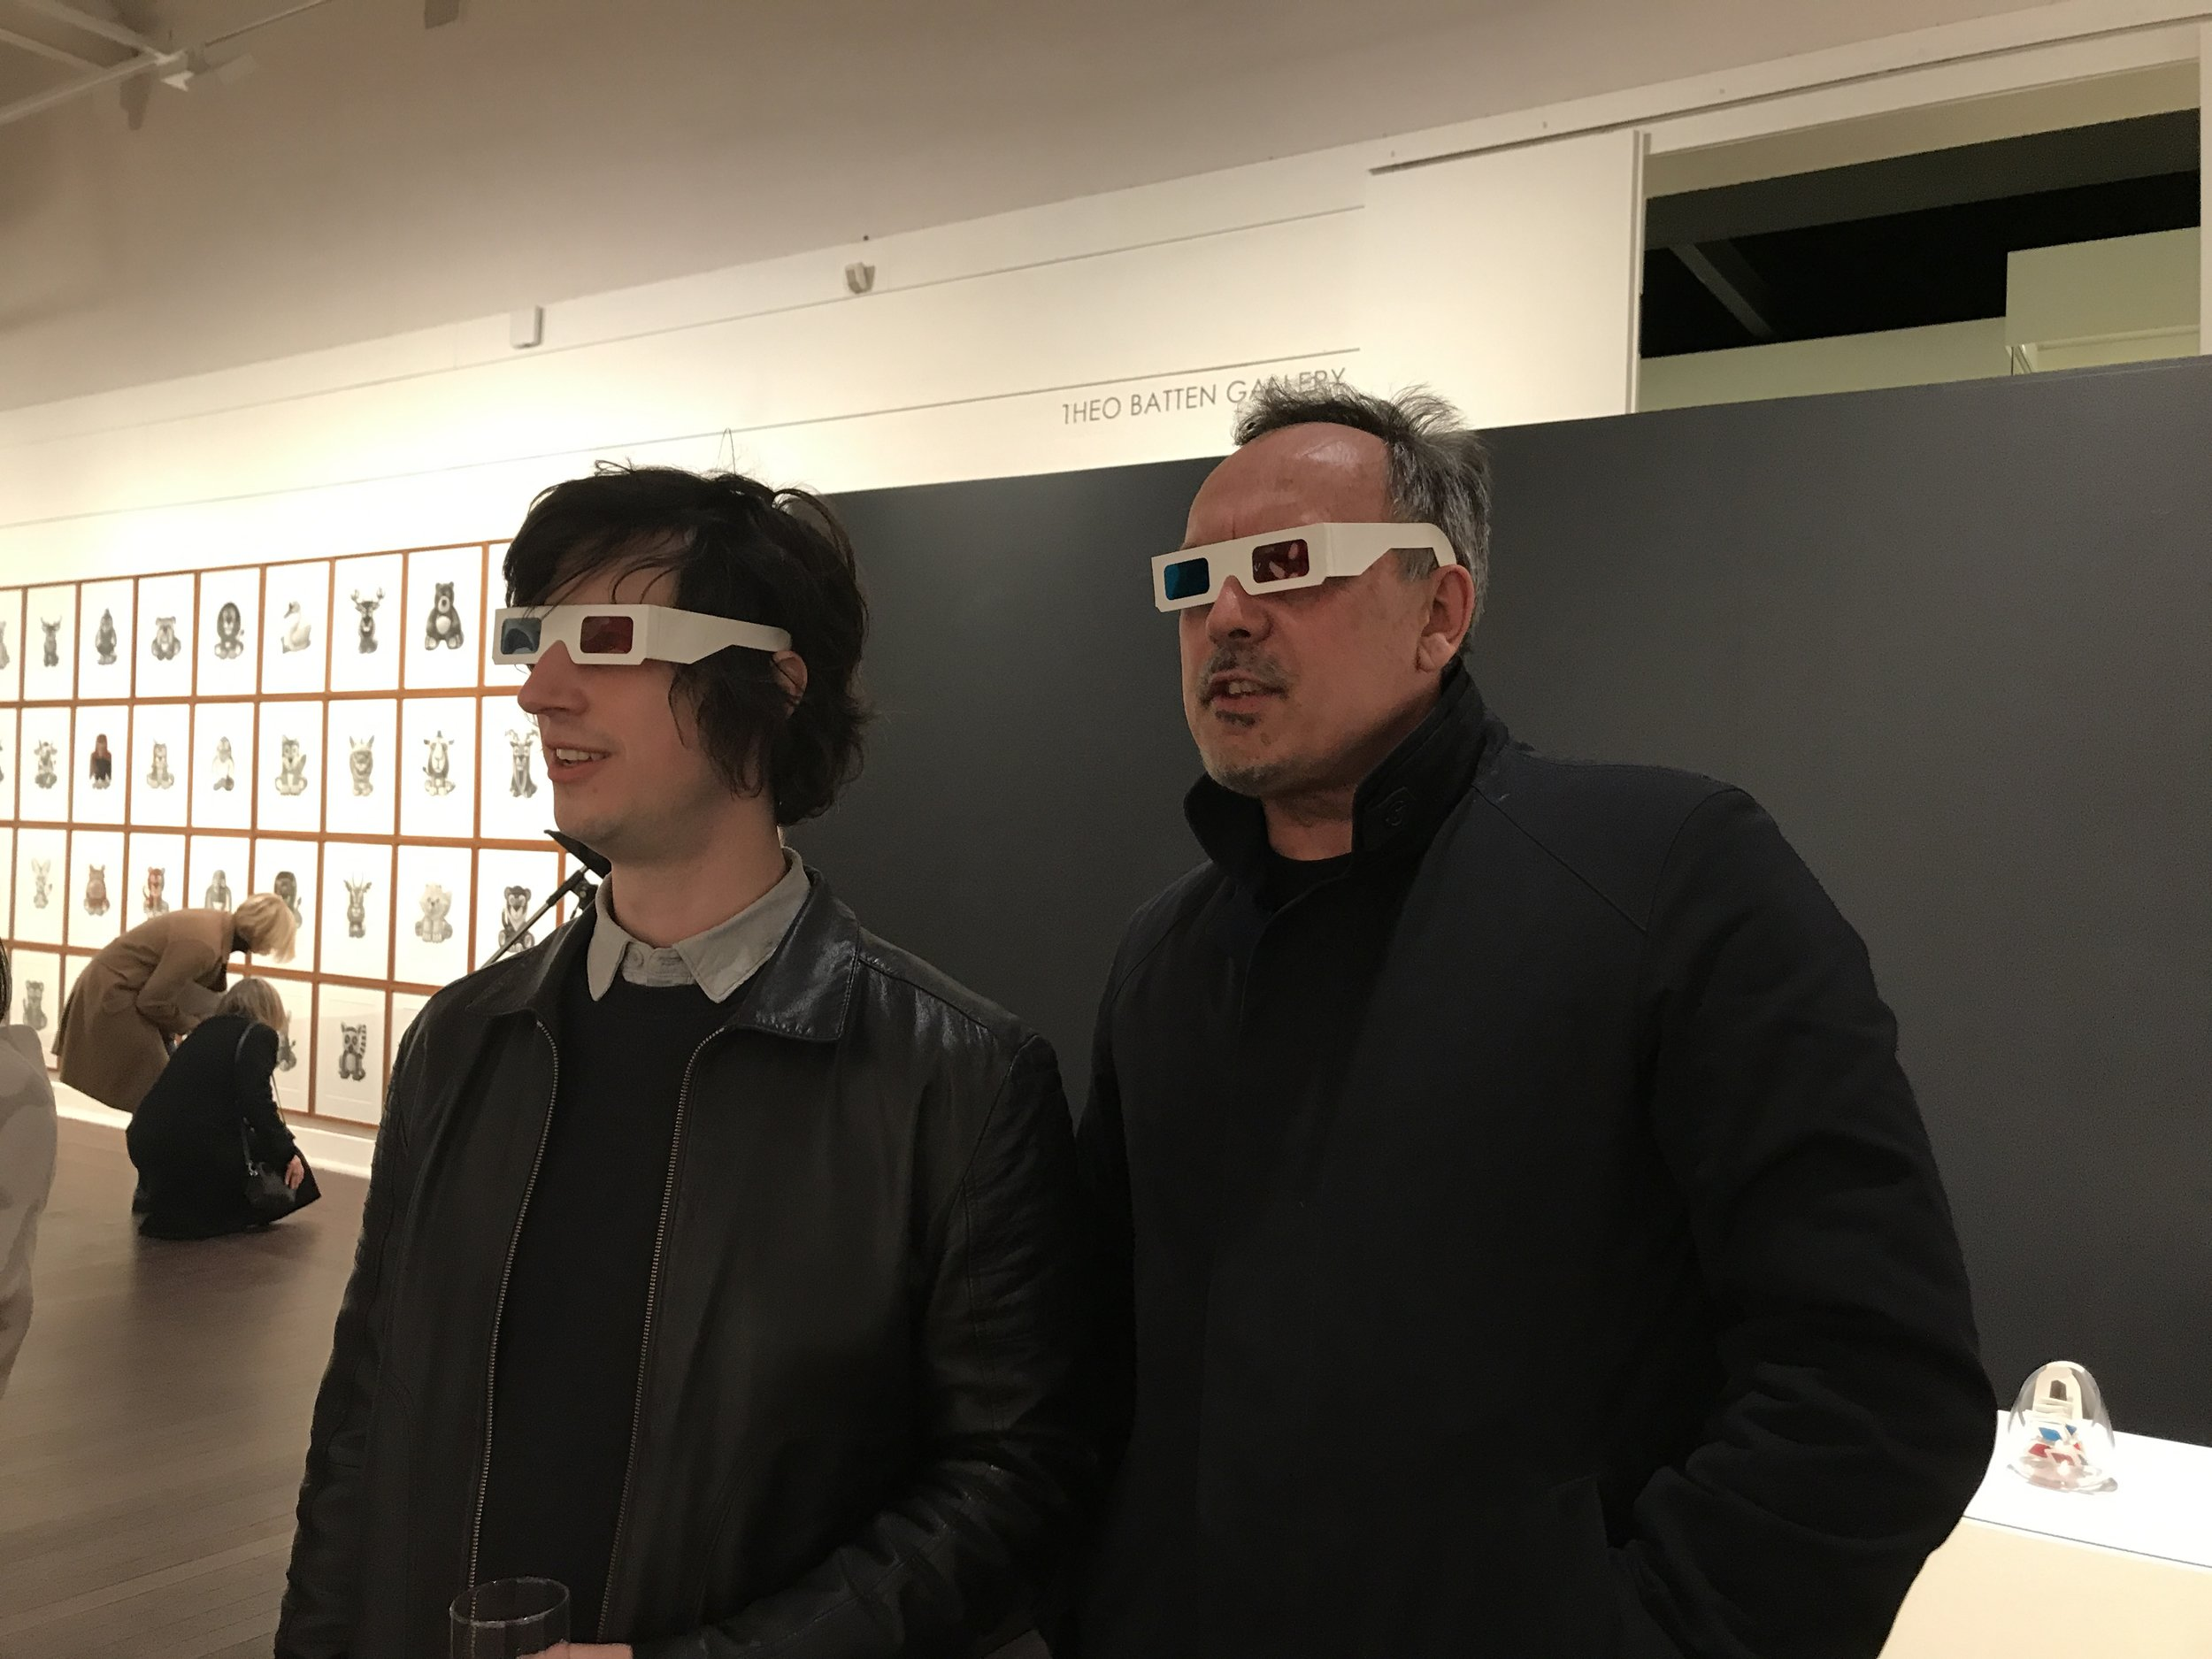 Fellow exhibiting artists Tony Curran and Michael Kempson enjoying the optical illusion of  Ocularanagluphos  in  Aura: Repetition, Reproduction, and the Mark of the Artist